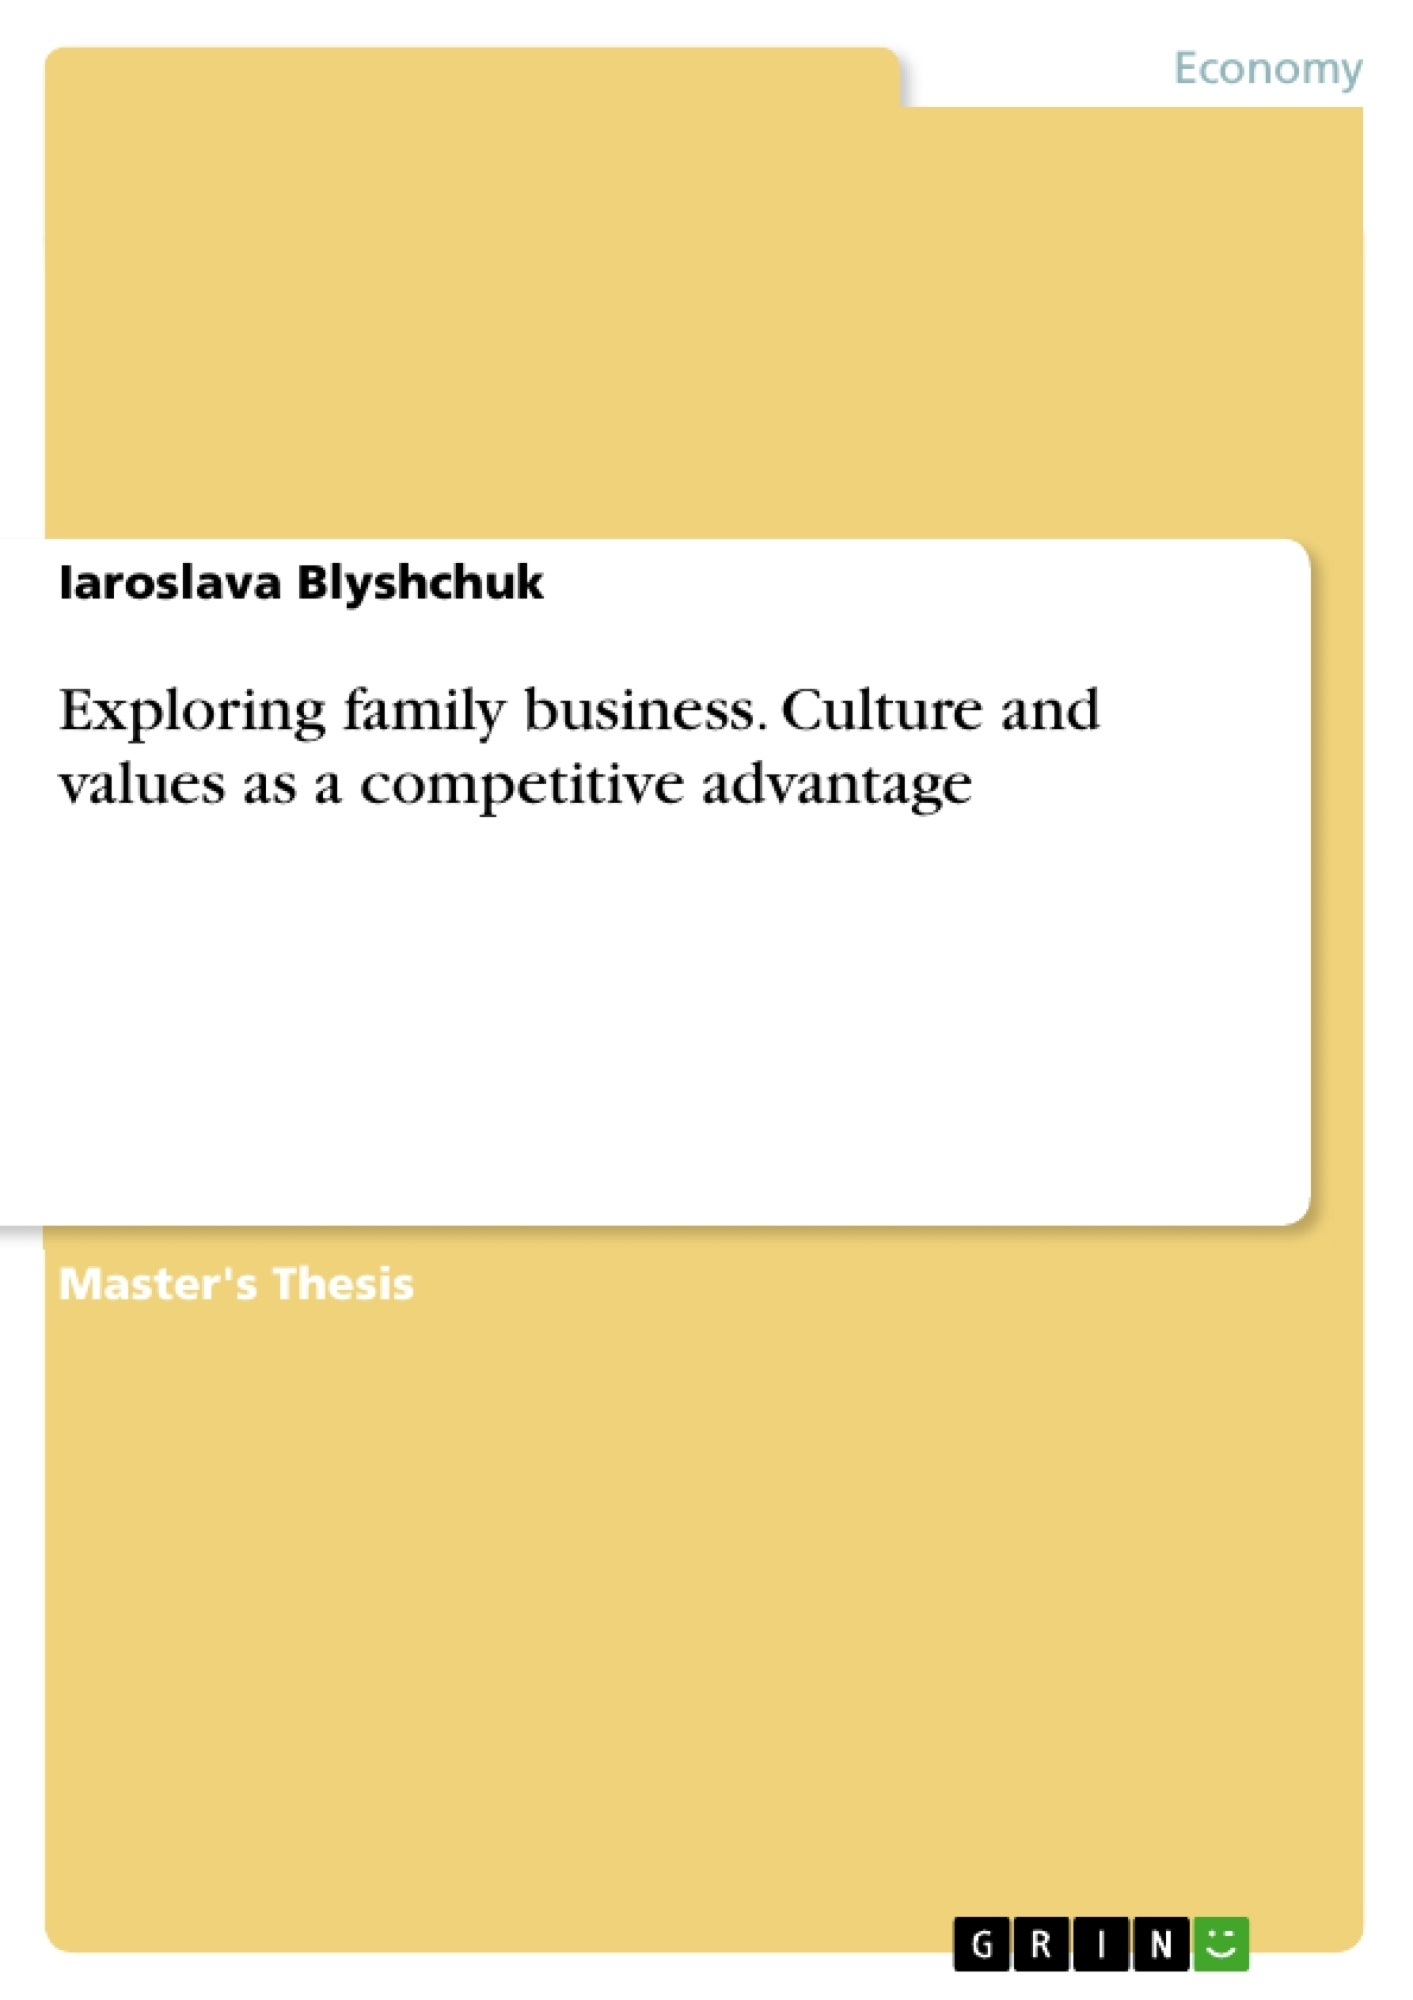 Title: Exploring family business. Culture and values as a competitive advantage